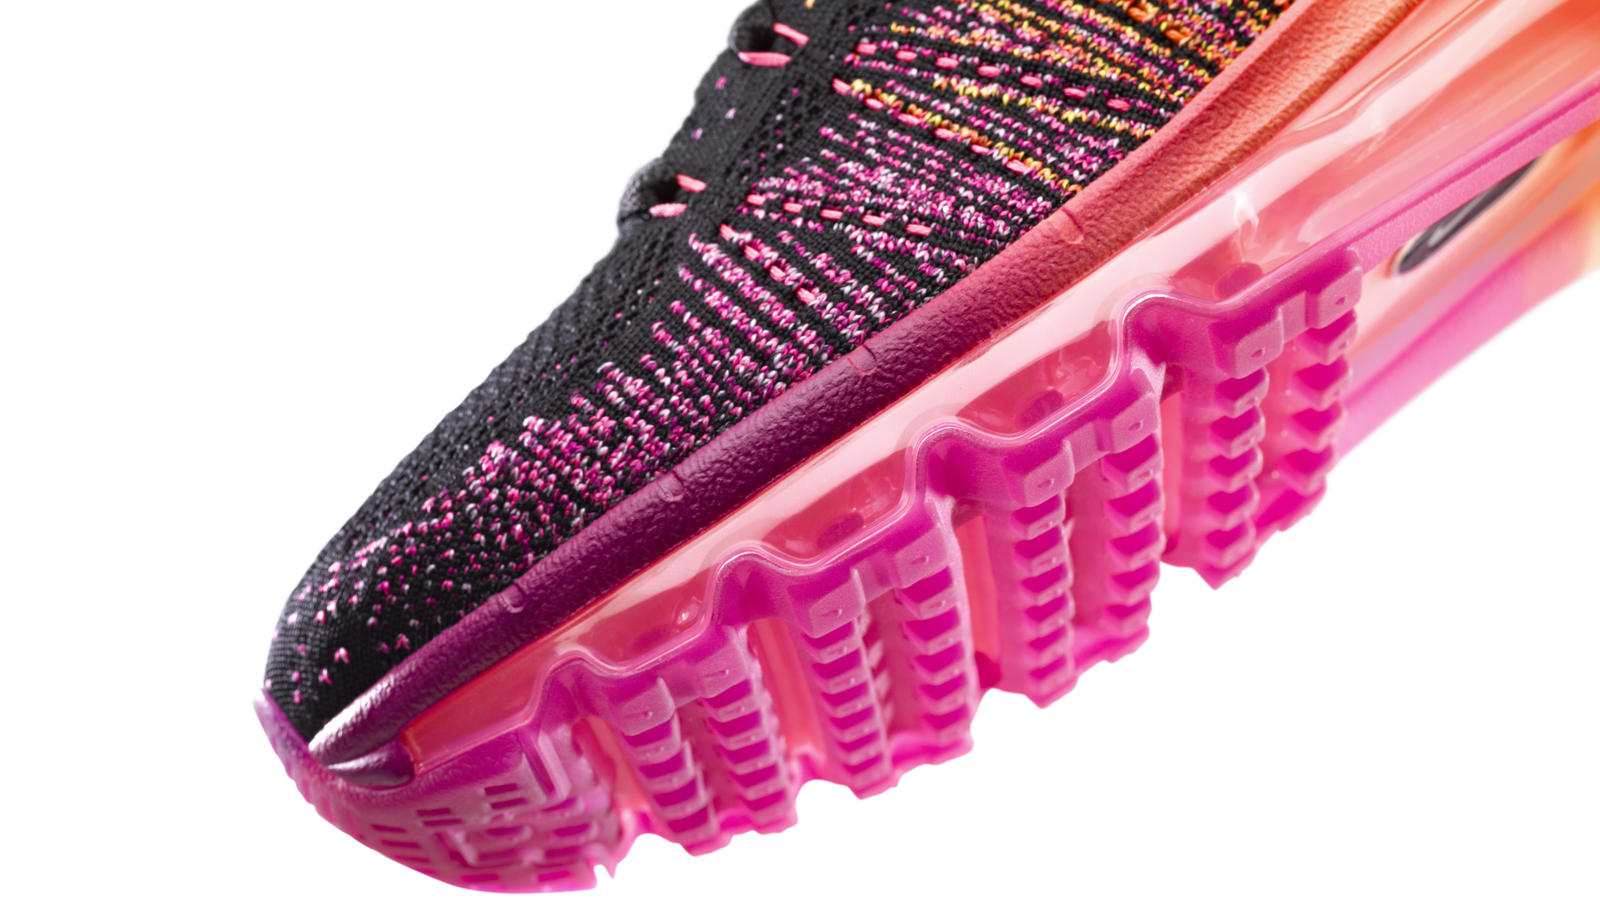 best service 10836 4e7f9 nike flyknit air max womens detail3. nike air max 2014 womens detail1.  nike flyknit air max womens detail1. nike flyknit air max mens detail1